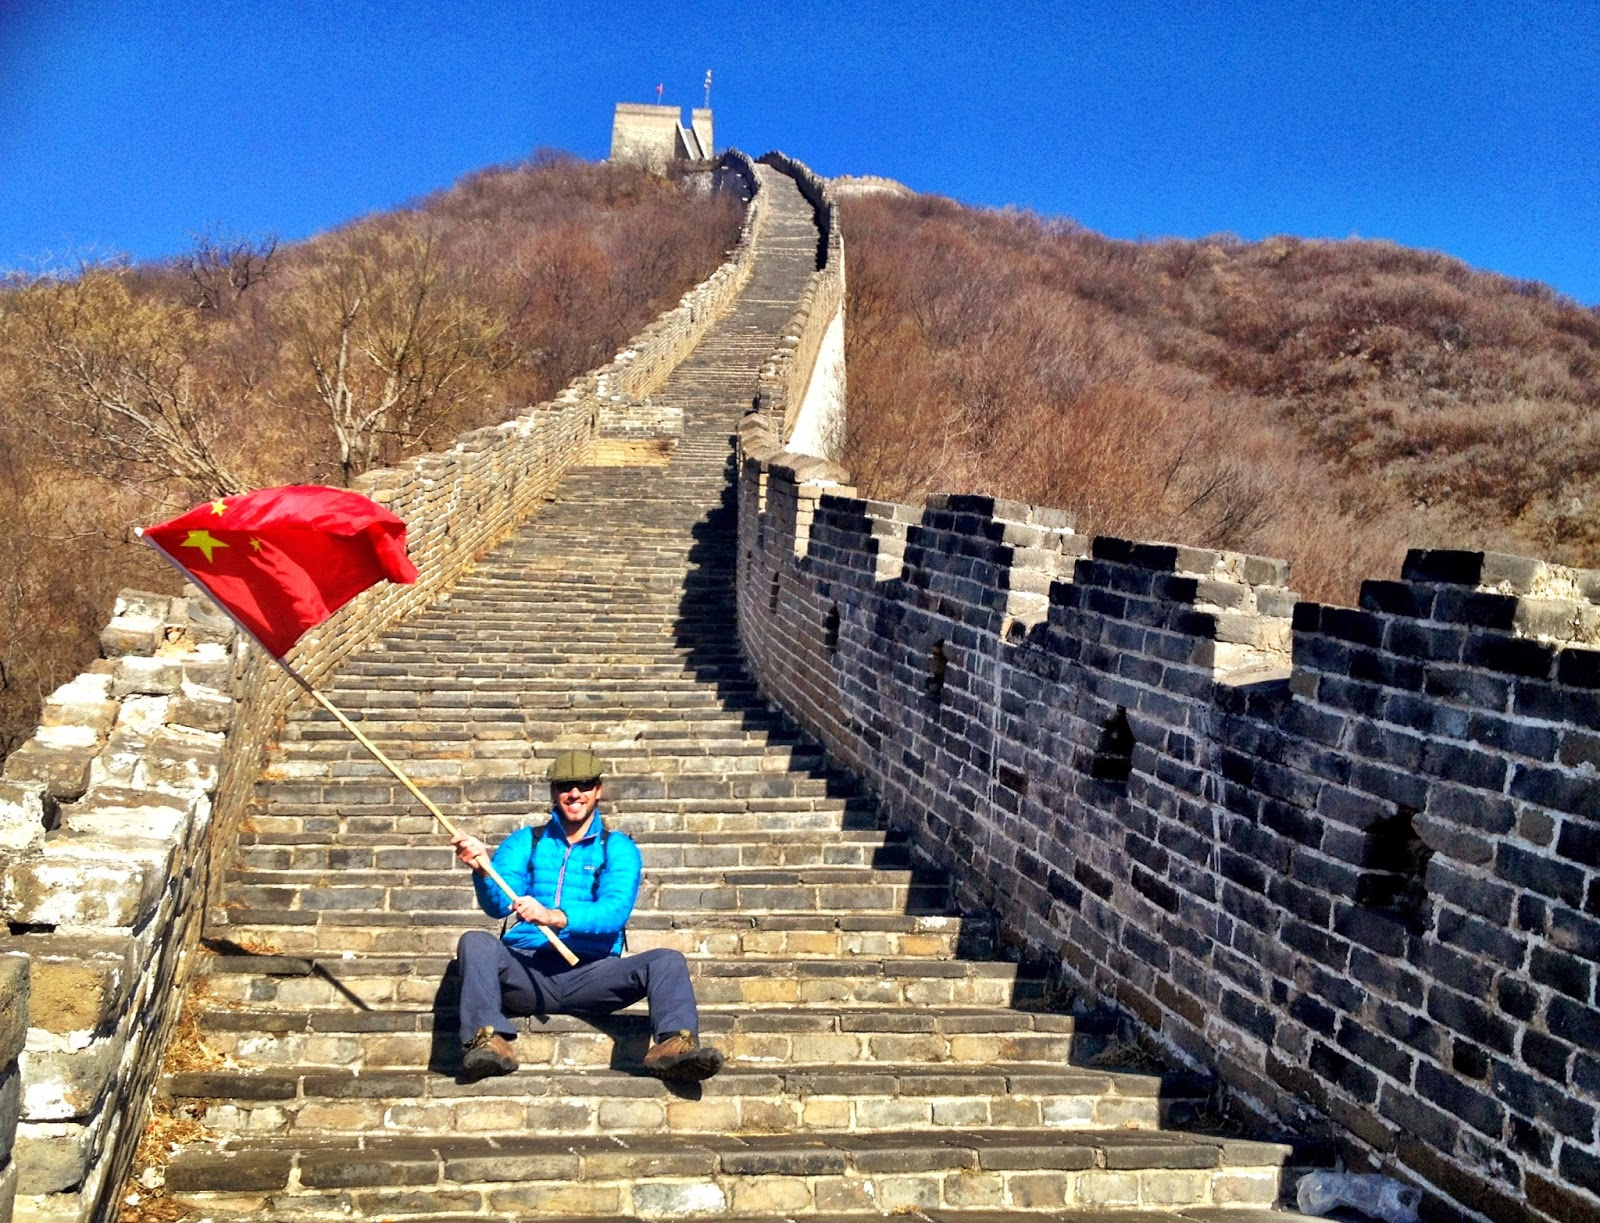 Simon waving a Chinese flag on the Great Wall